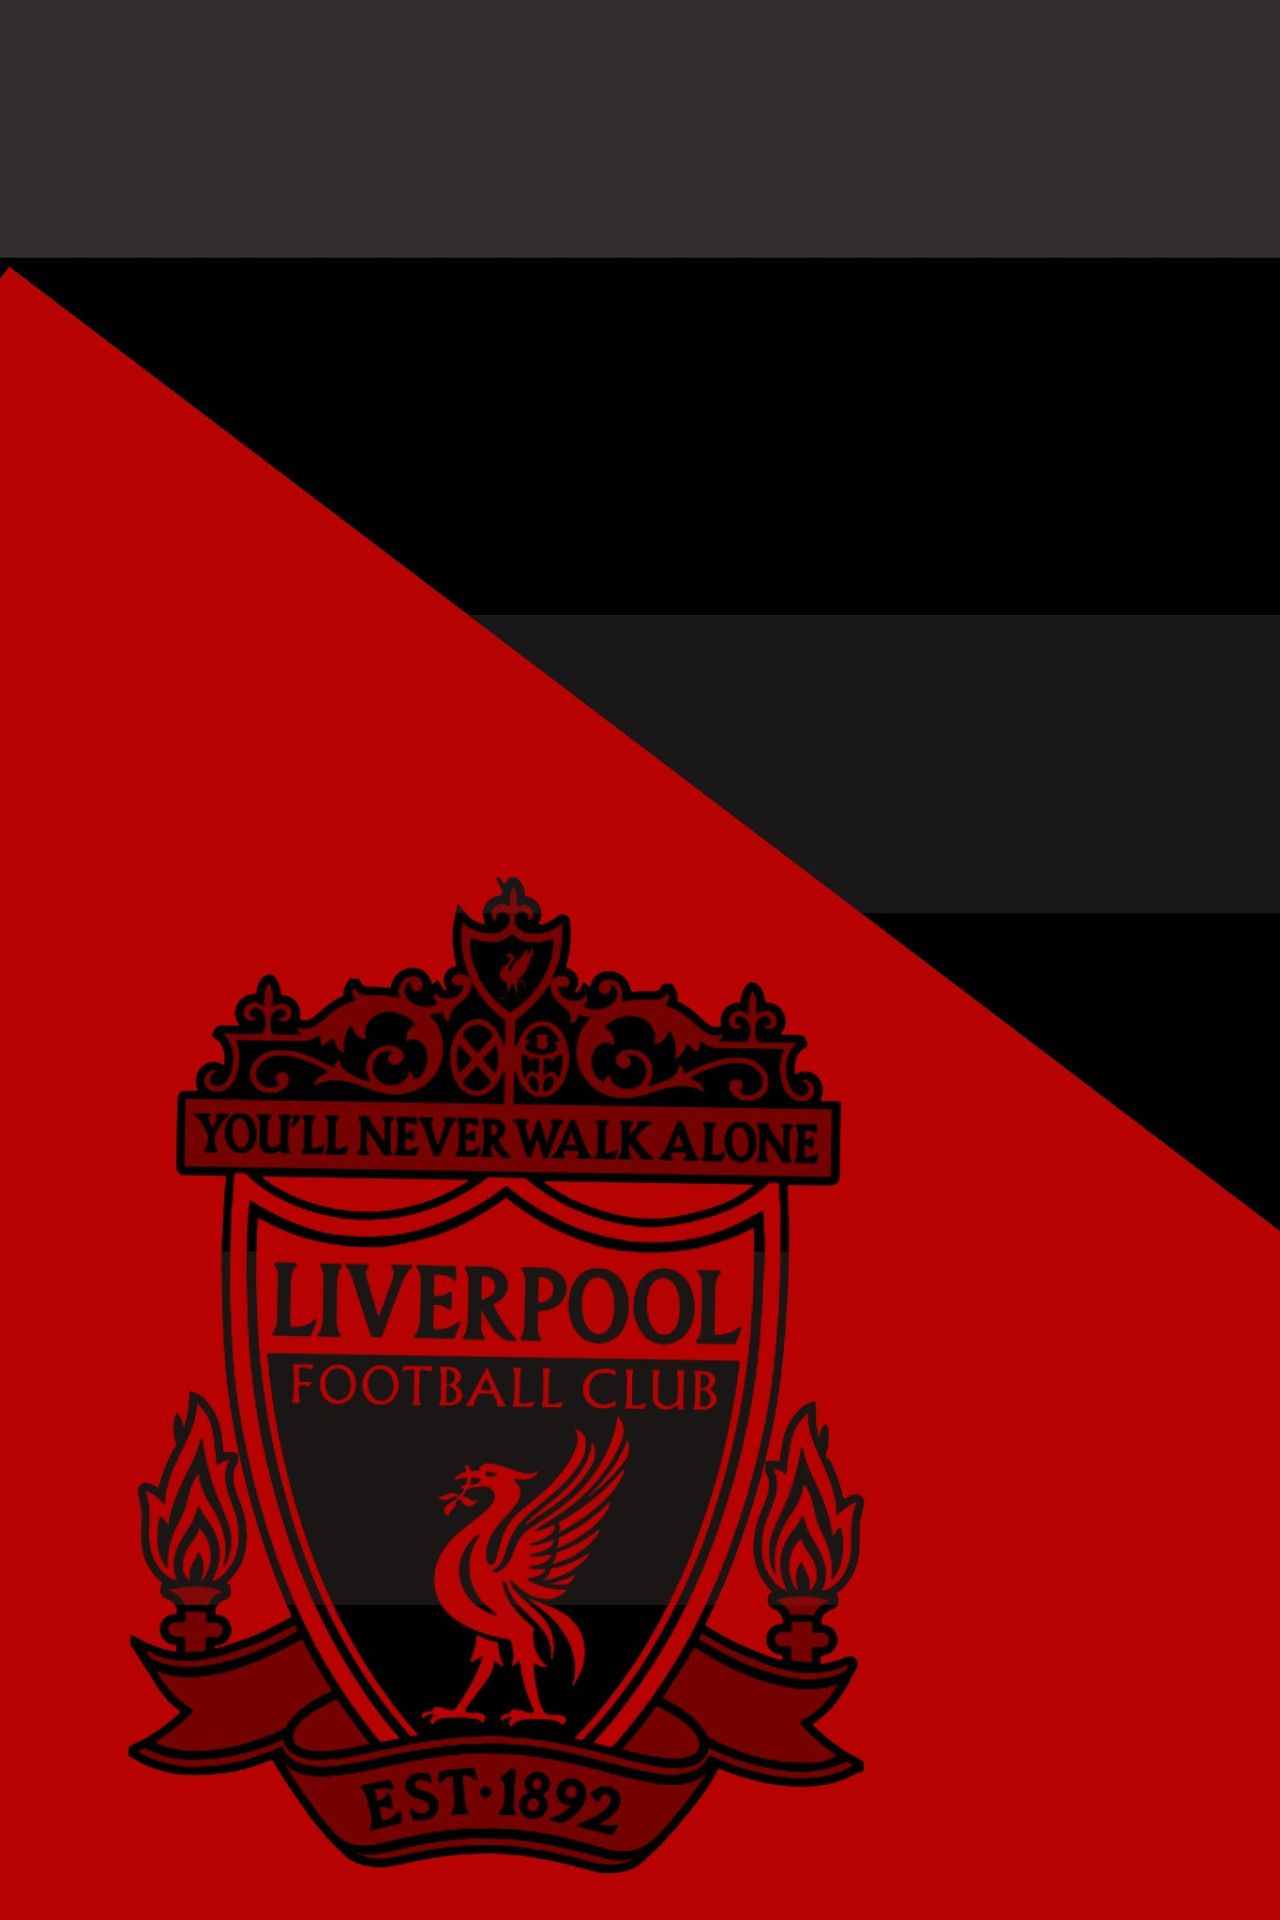 pin wallpaper liverpool awesome - photo #7